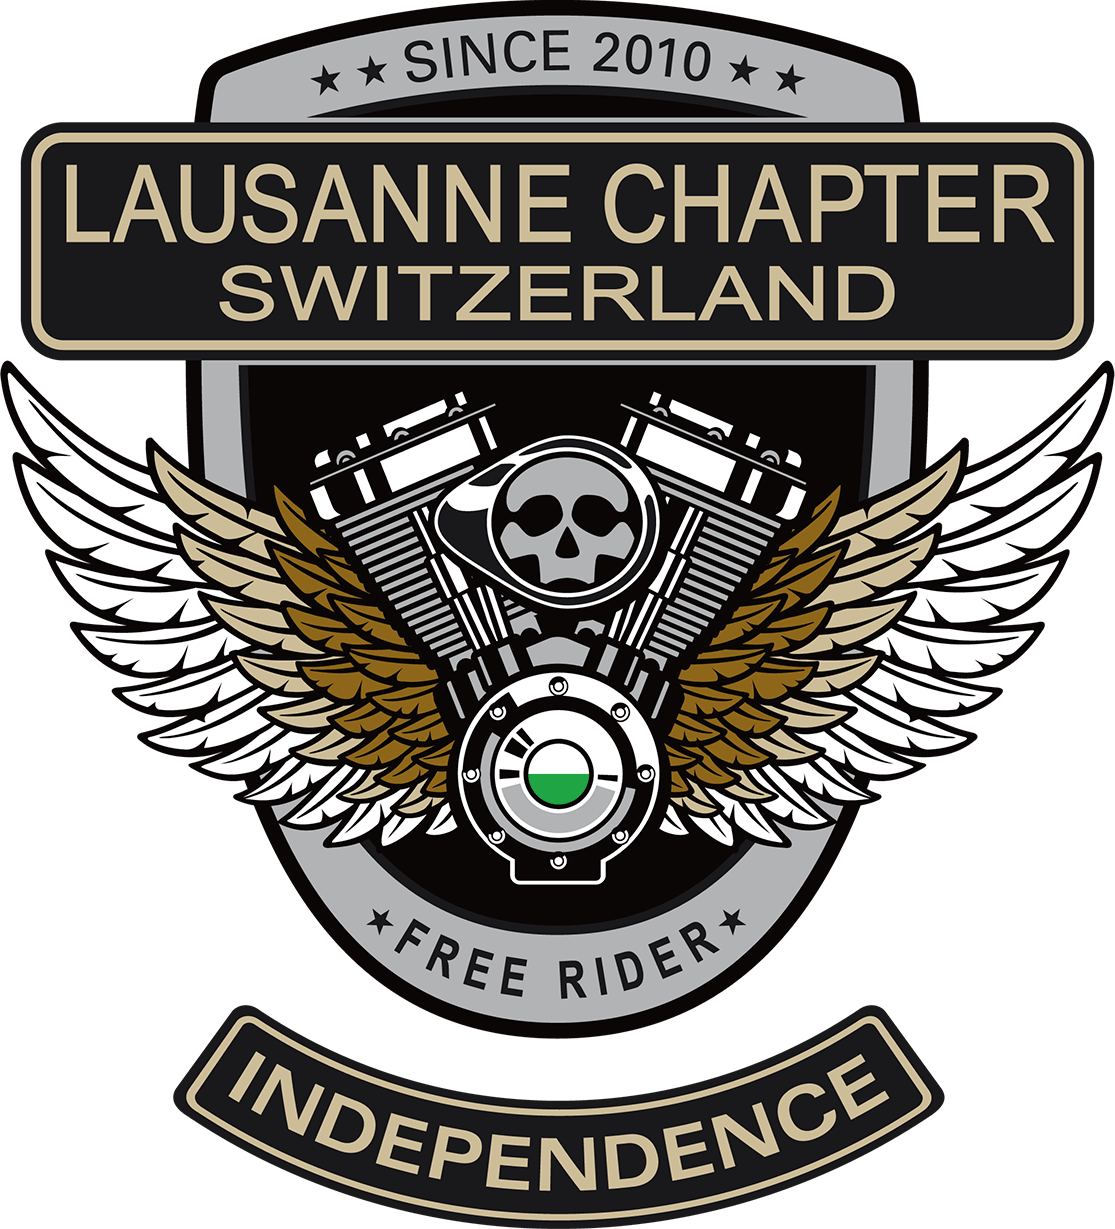 Lausanne Chapter